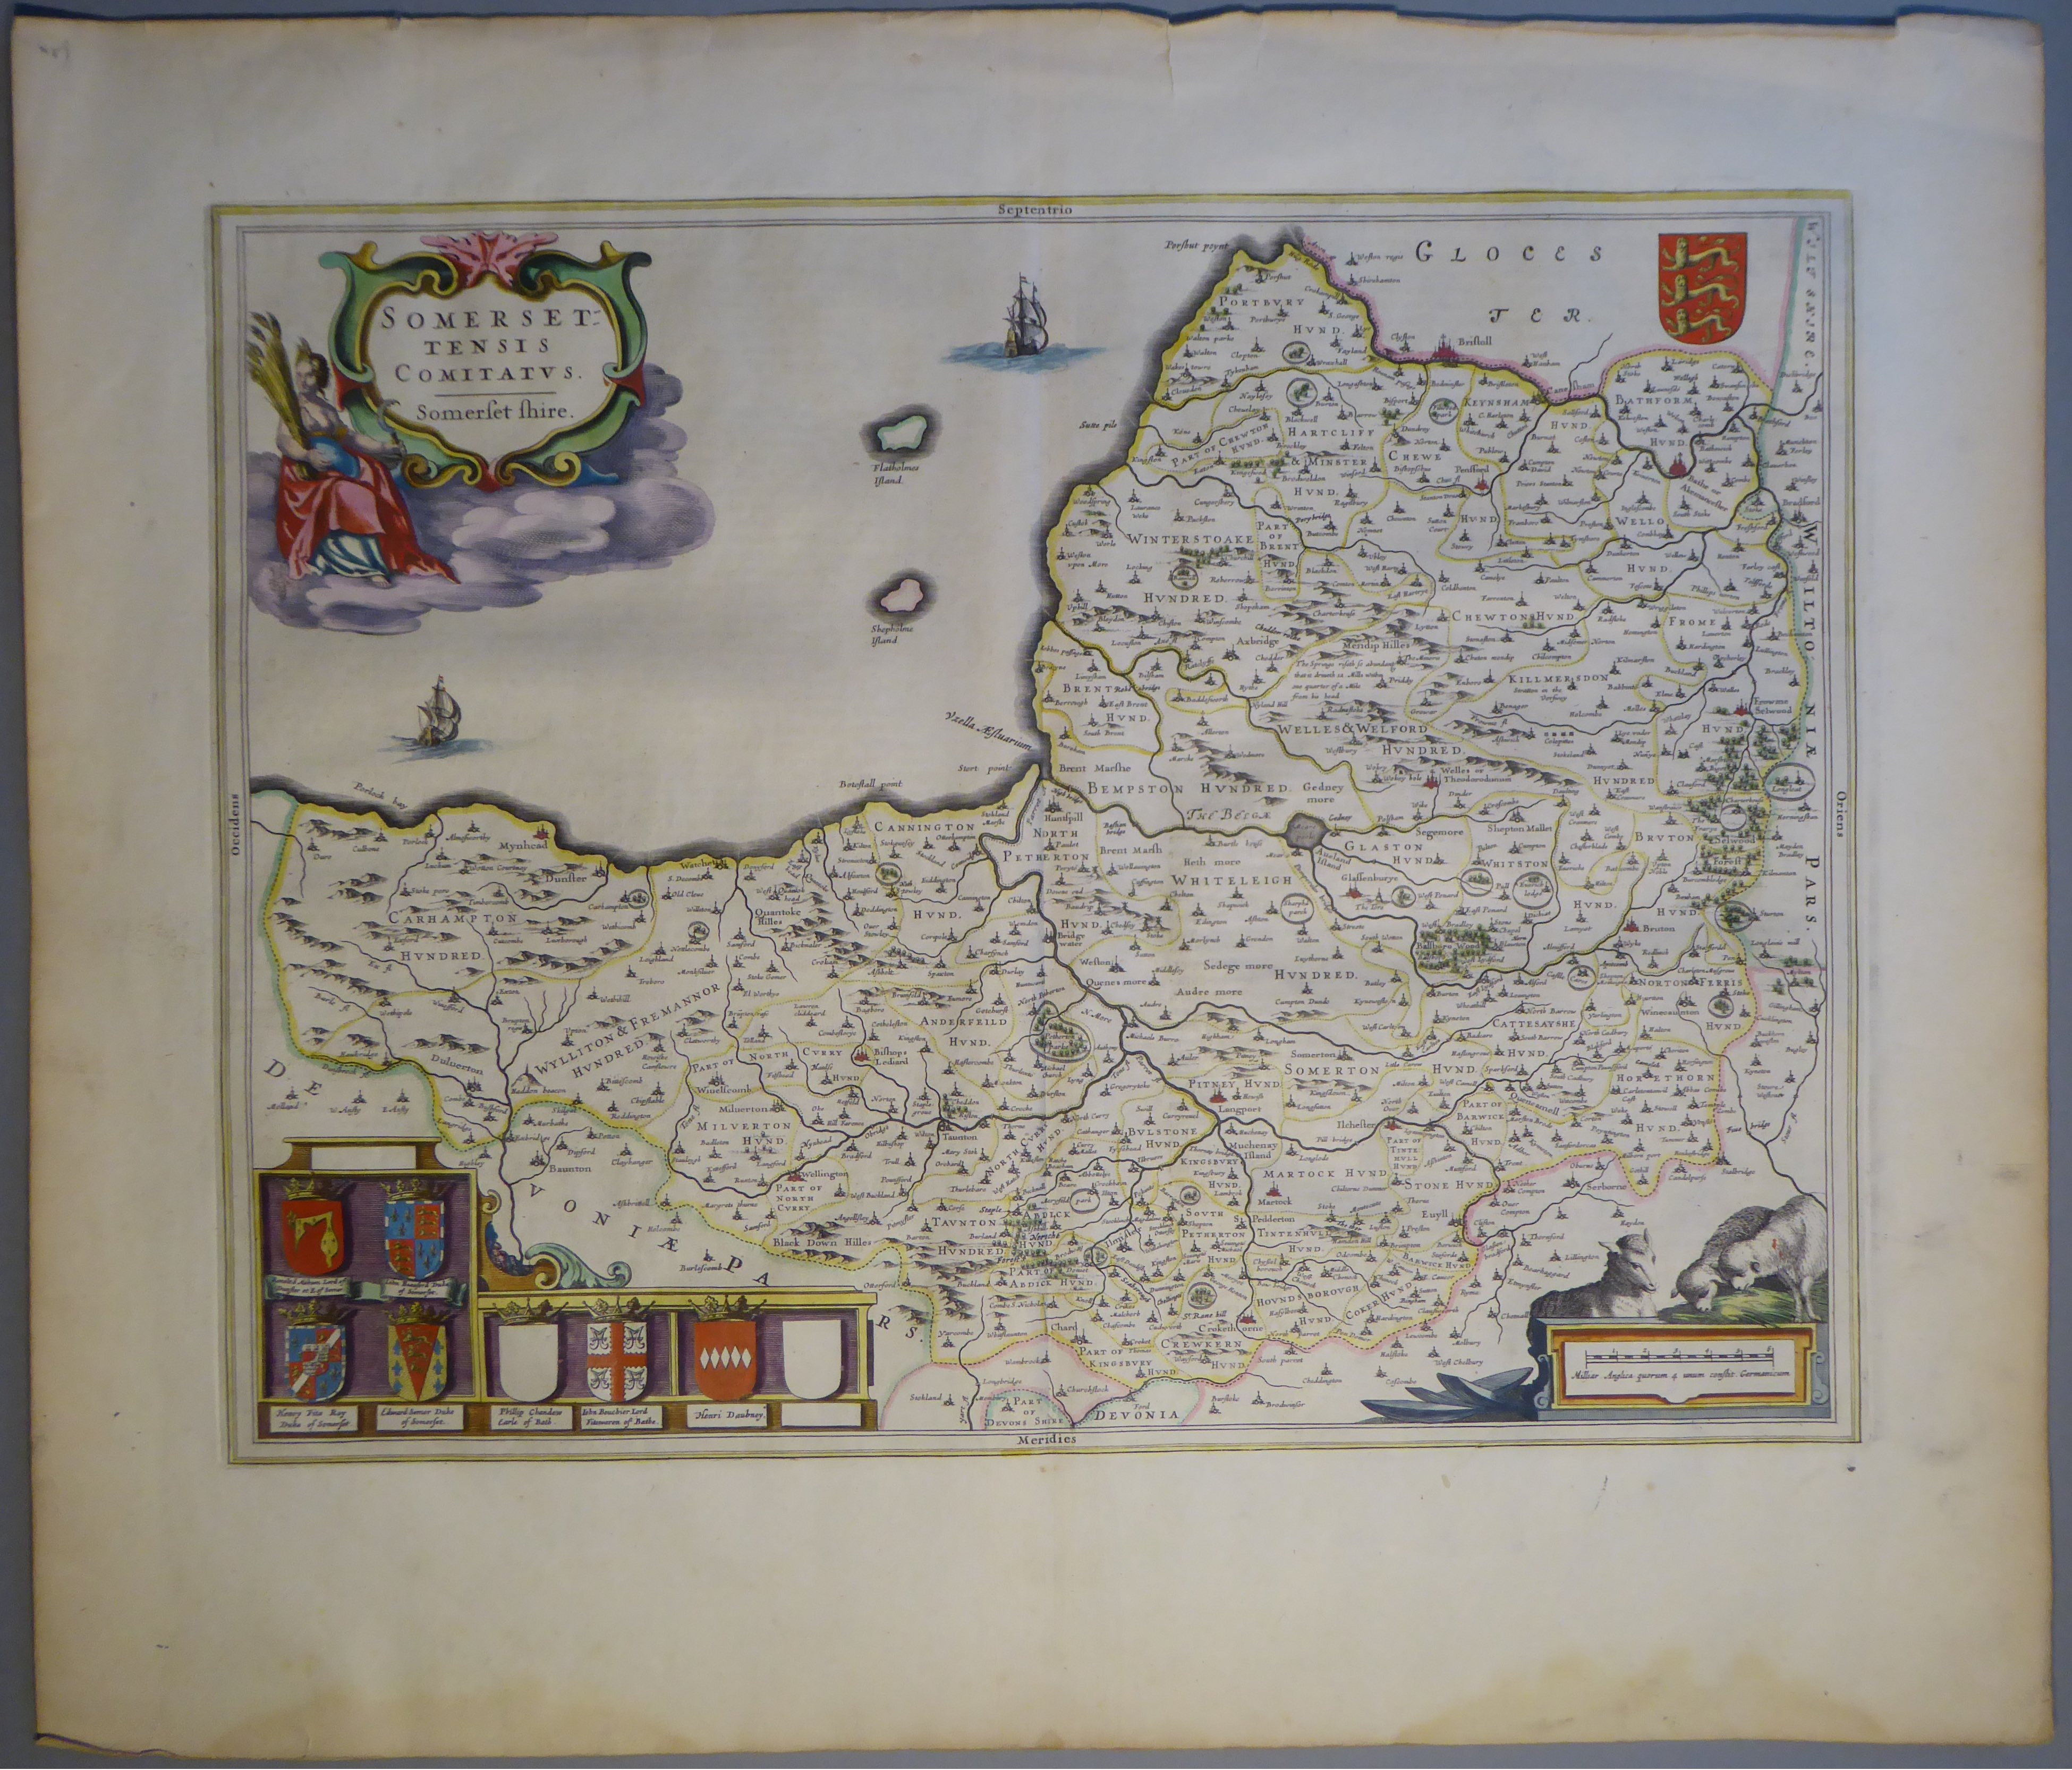 Lot 54 - A C17th hand coloured copper engraved map of Somersetshire by William Blaeu, c1645